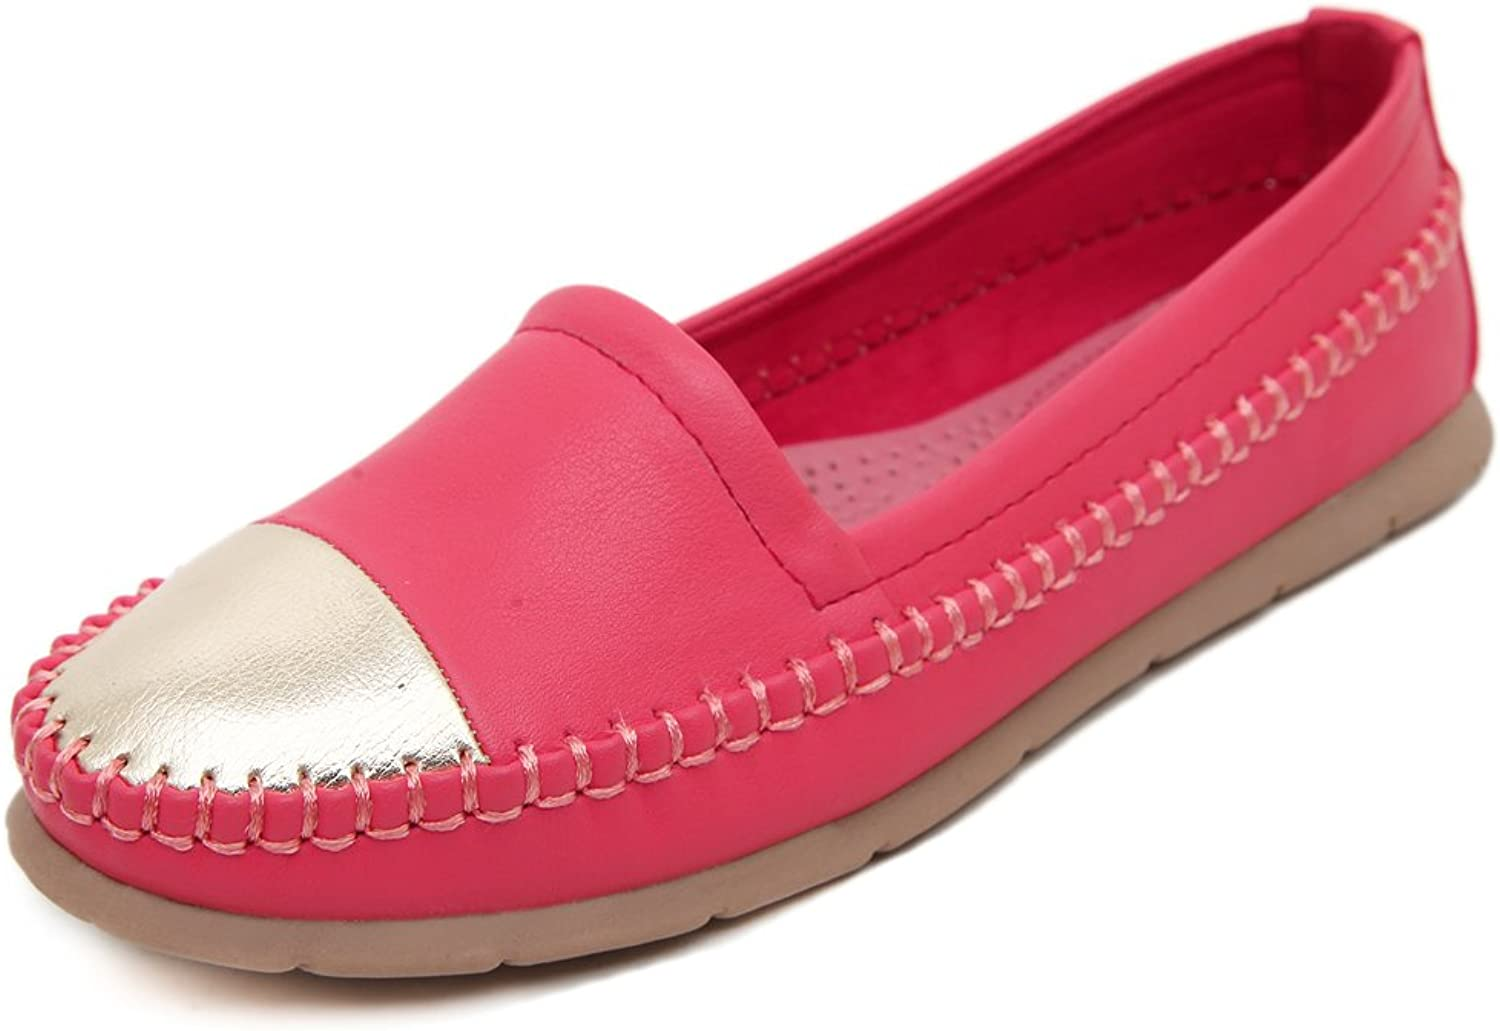 Adelina Women's Classical Two-toned Boat Loafer shoes Driving Moccasin Red 40 EU   8.5-9 US